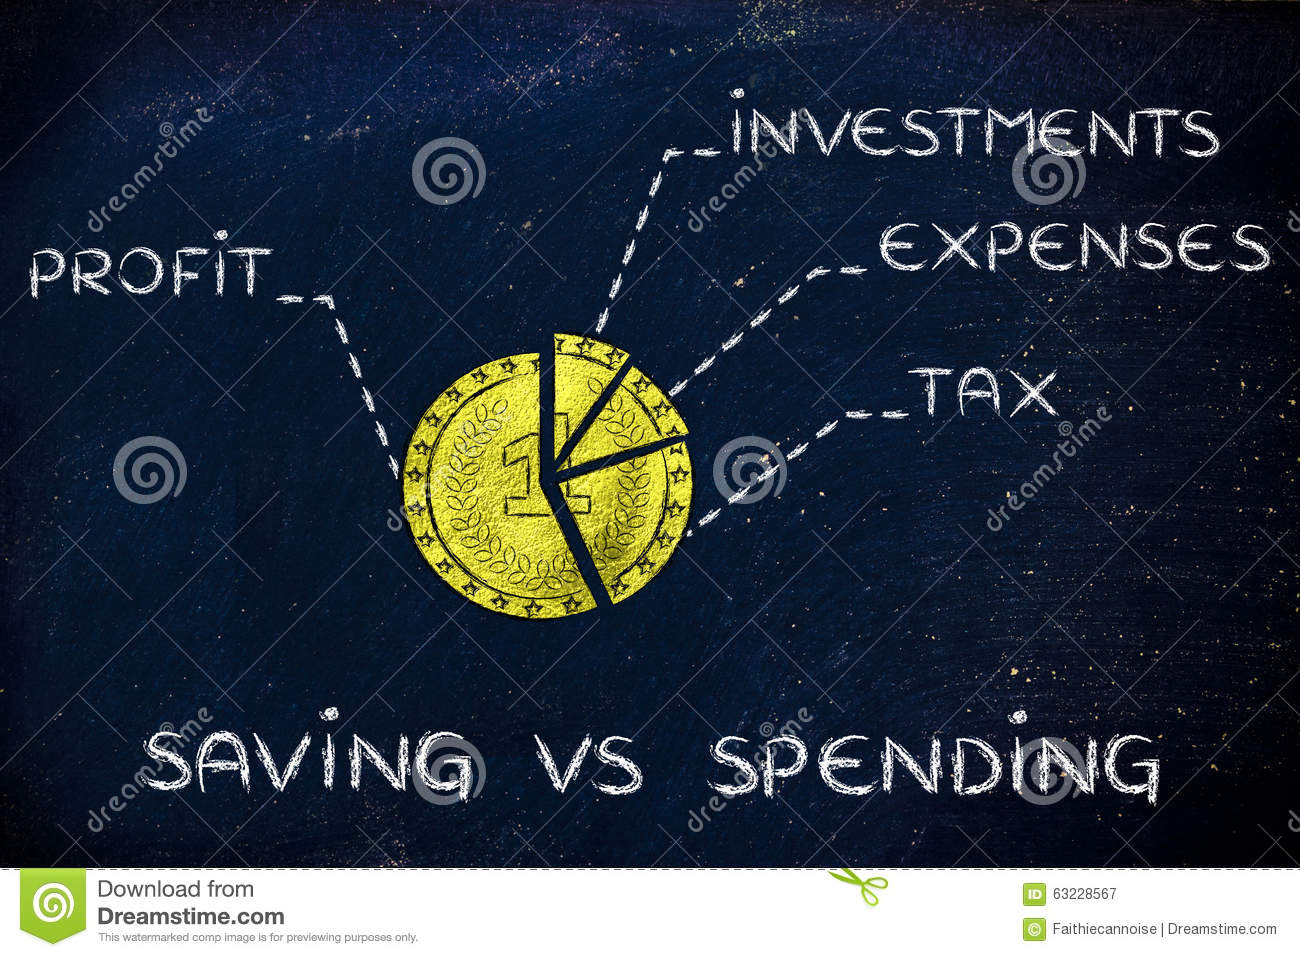 money saving vs spending I want to discuss my relationship with money and how i think about investing in the stock market (dividend paying stocks) versus saving money in the bank versus spending money.